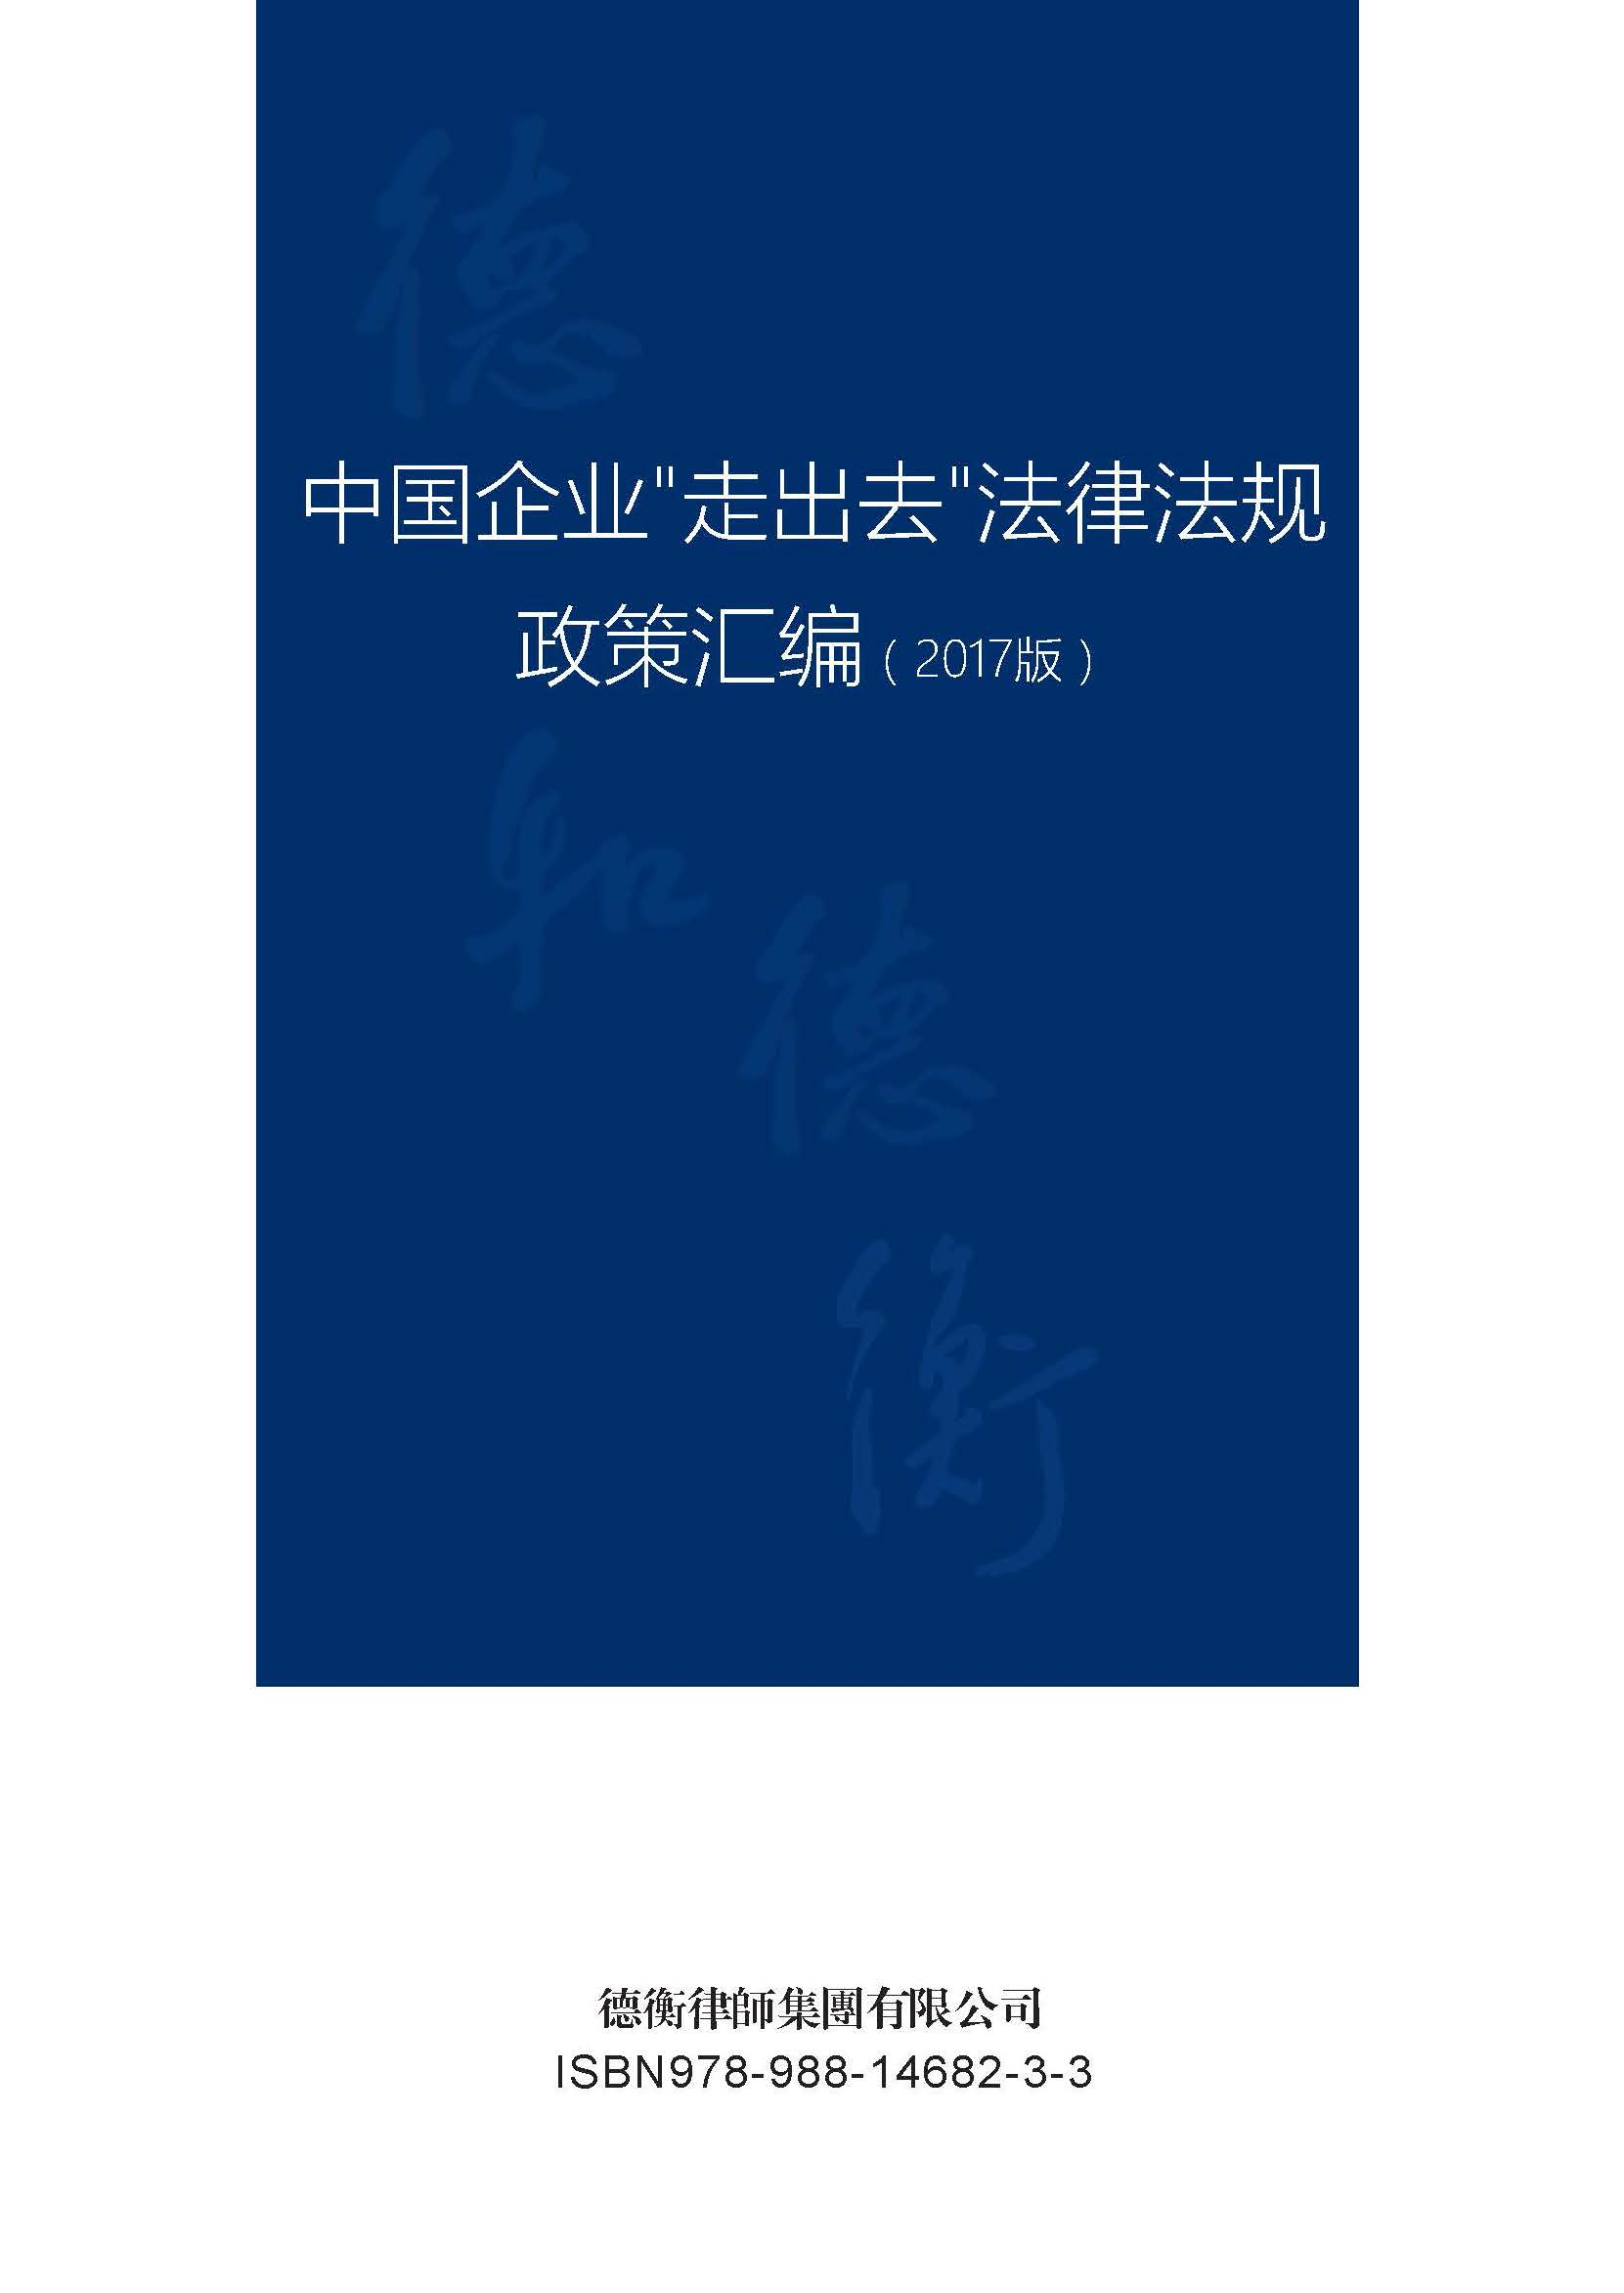 Laws, Regulations and Policies on Chinese Enterprises Investing Overseas